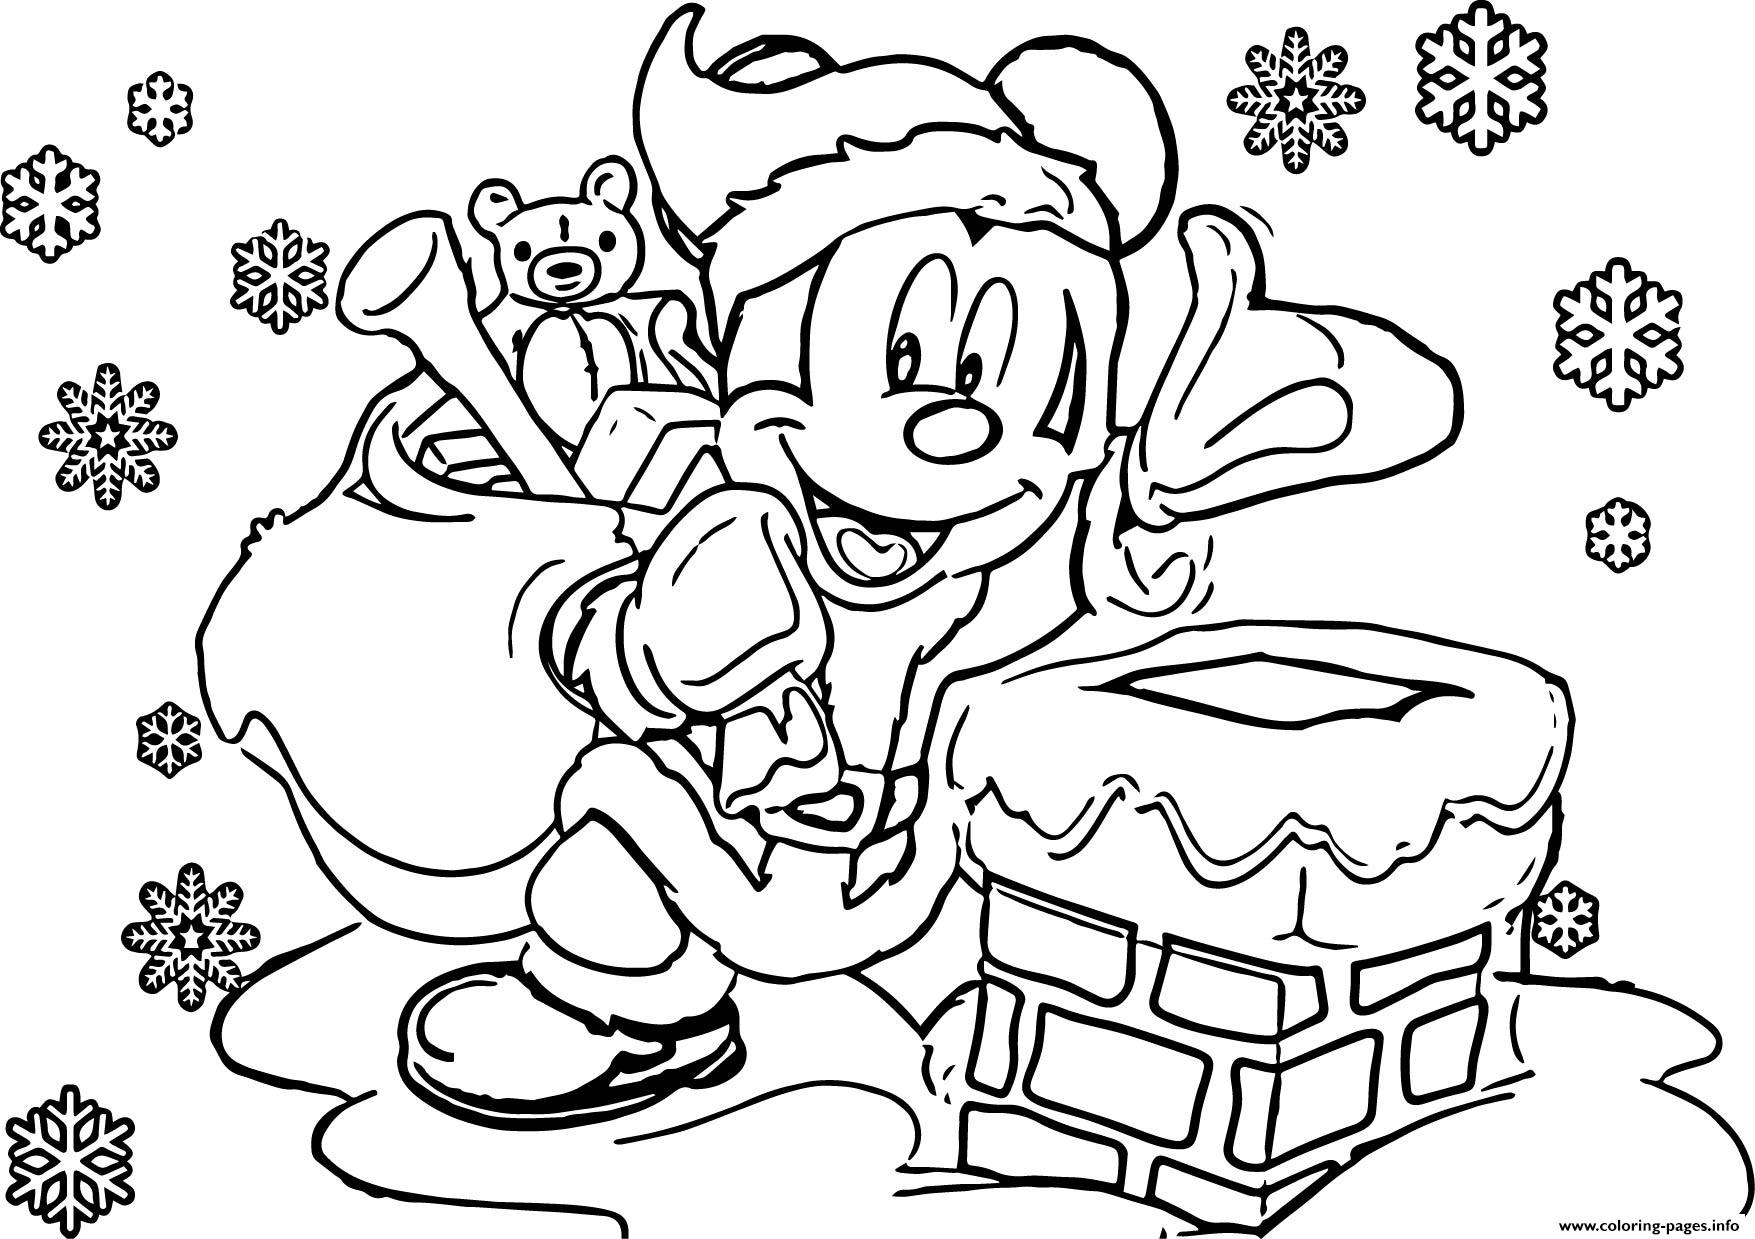 Printable Disney Coloring Pages For Kids: Disney Christmas Color Coloring Pages Printable